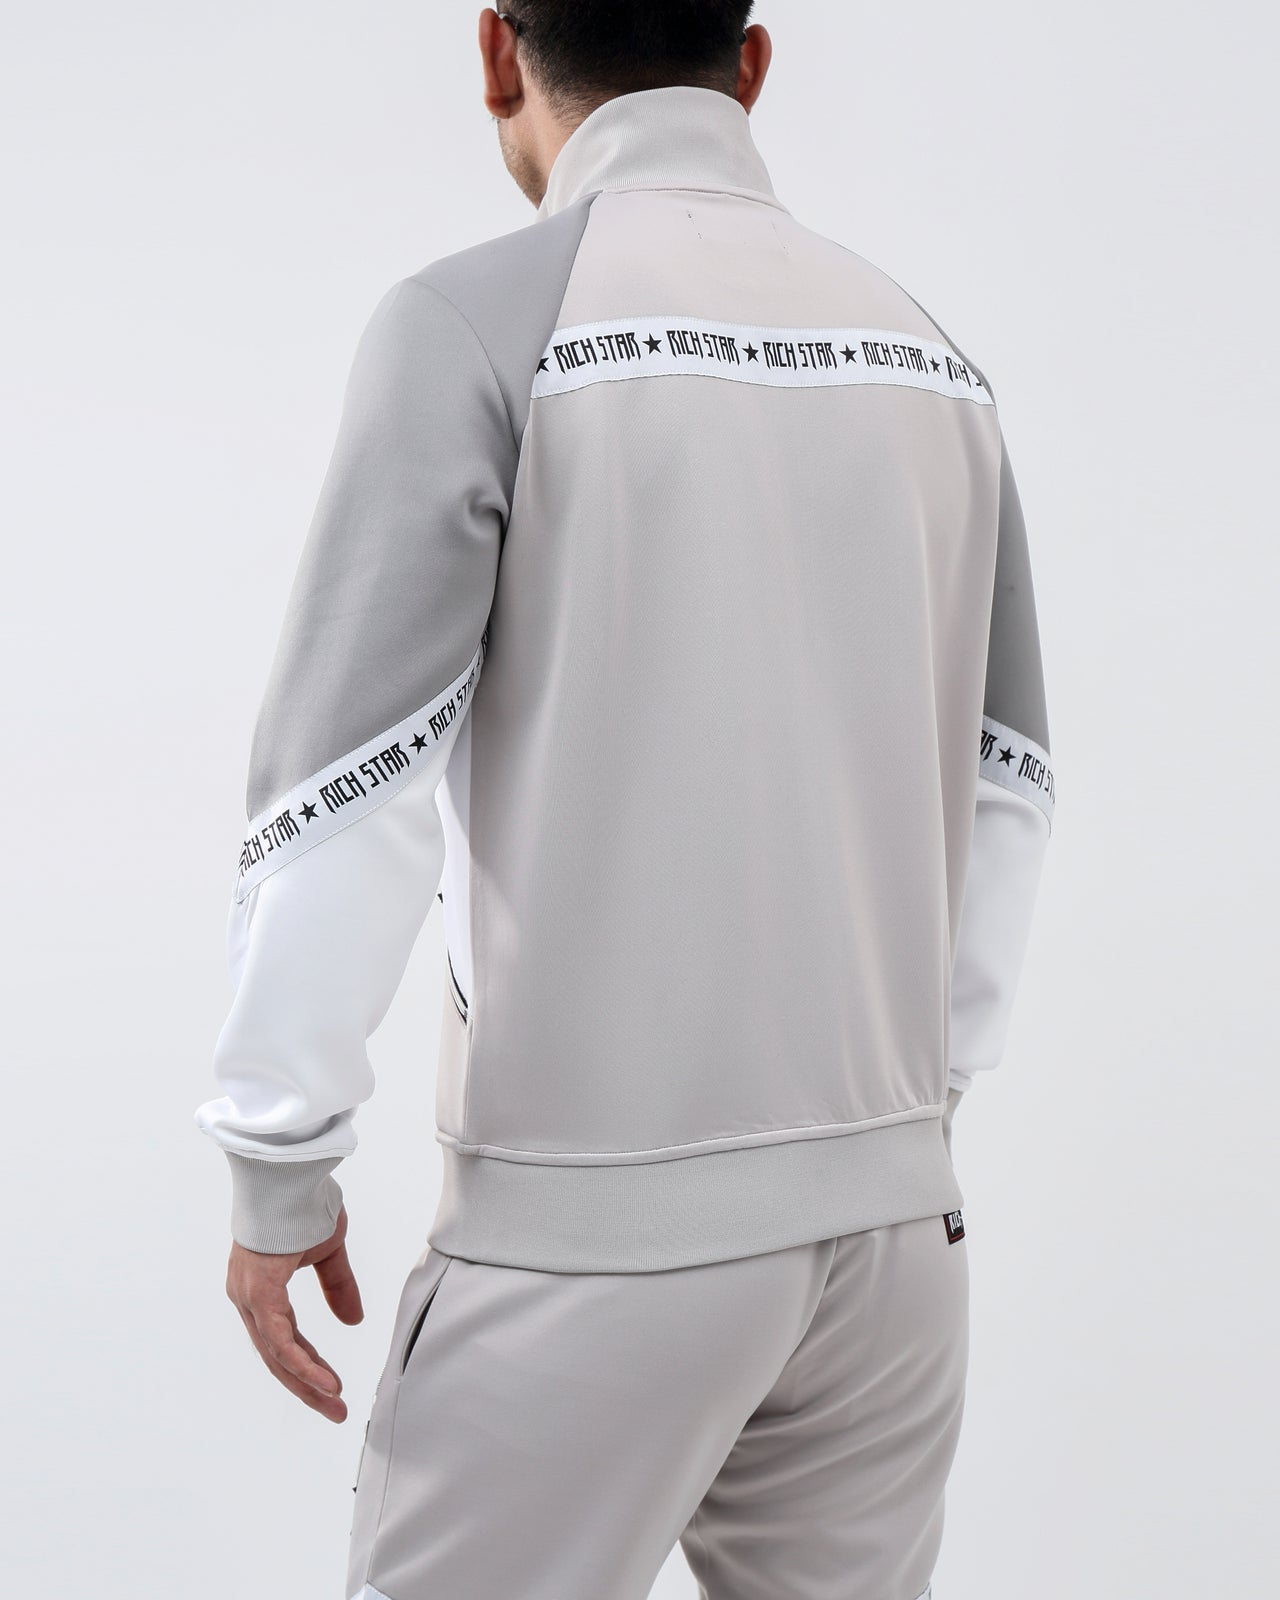 SLANT LOGO TRACK JACKET - Color: GRAY